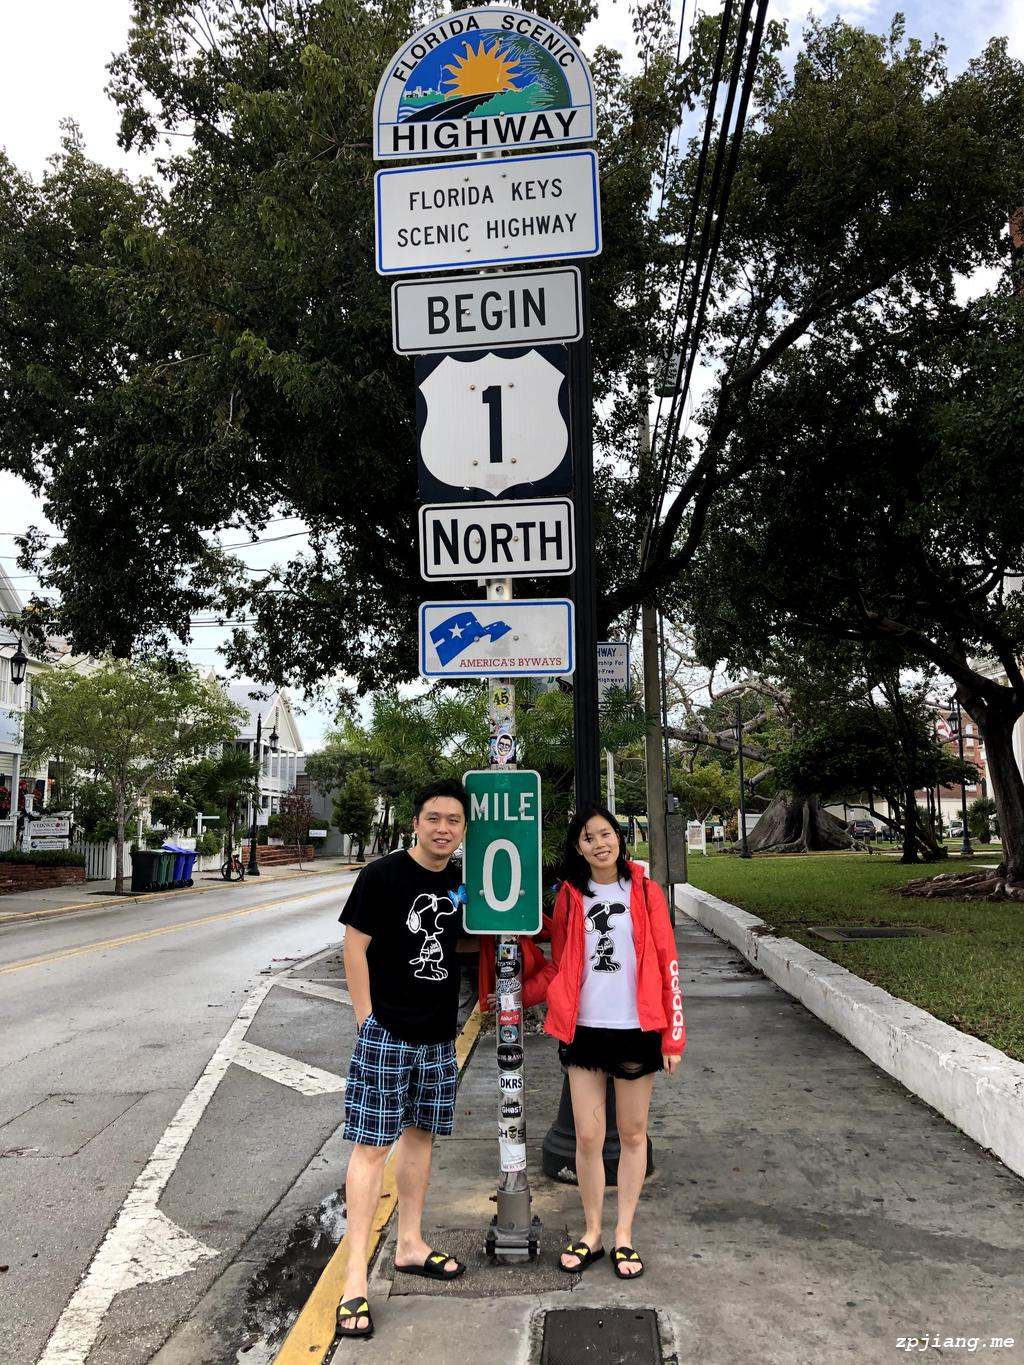 The mile 0 marker in Key West.